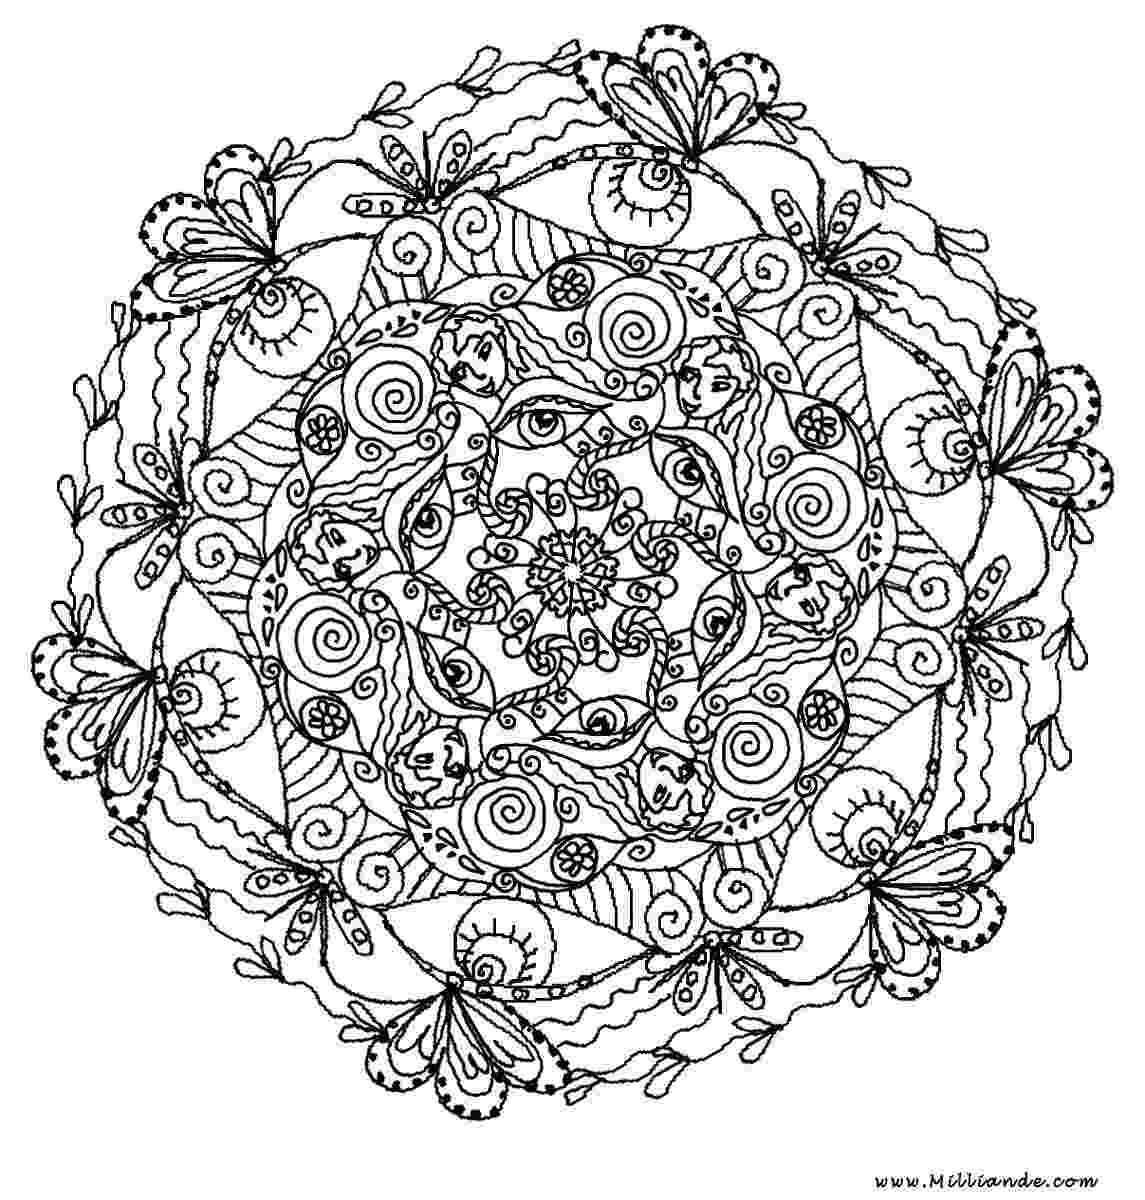 free printable mandalas coloring pages adults coloring pages blog download coloring pages for kids mandalas free pages printable adults coloring